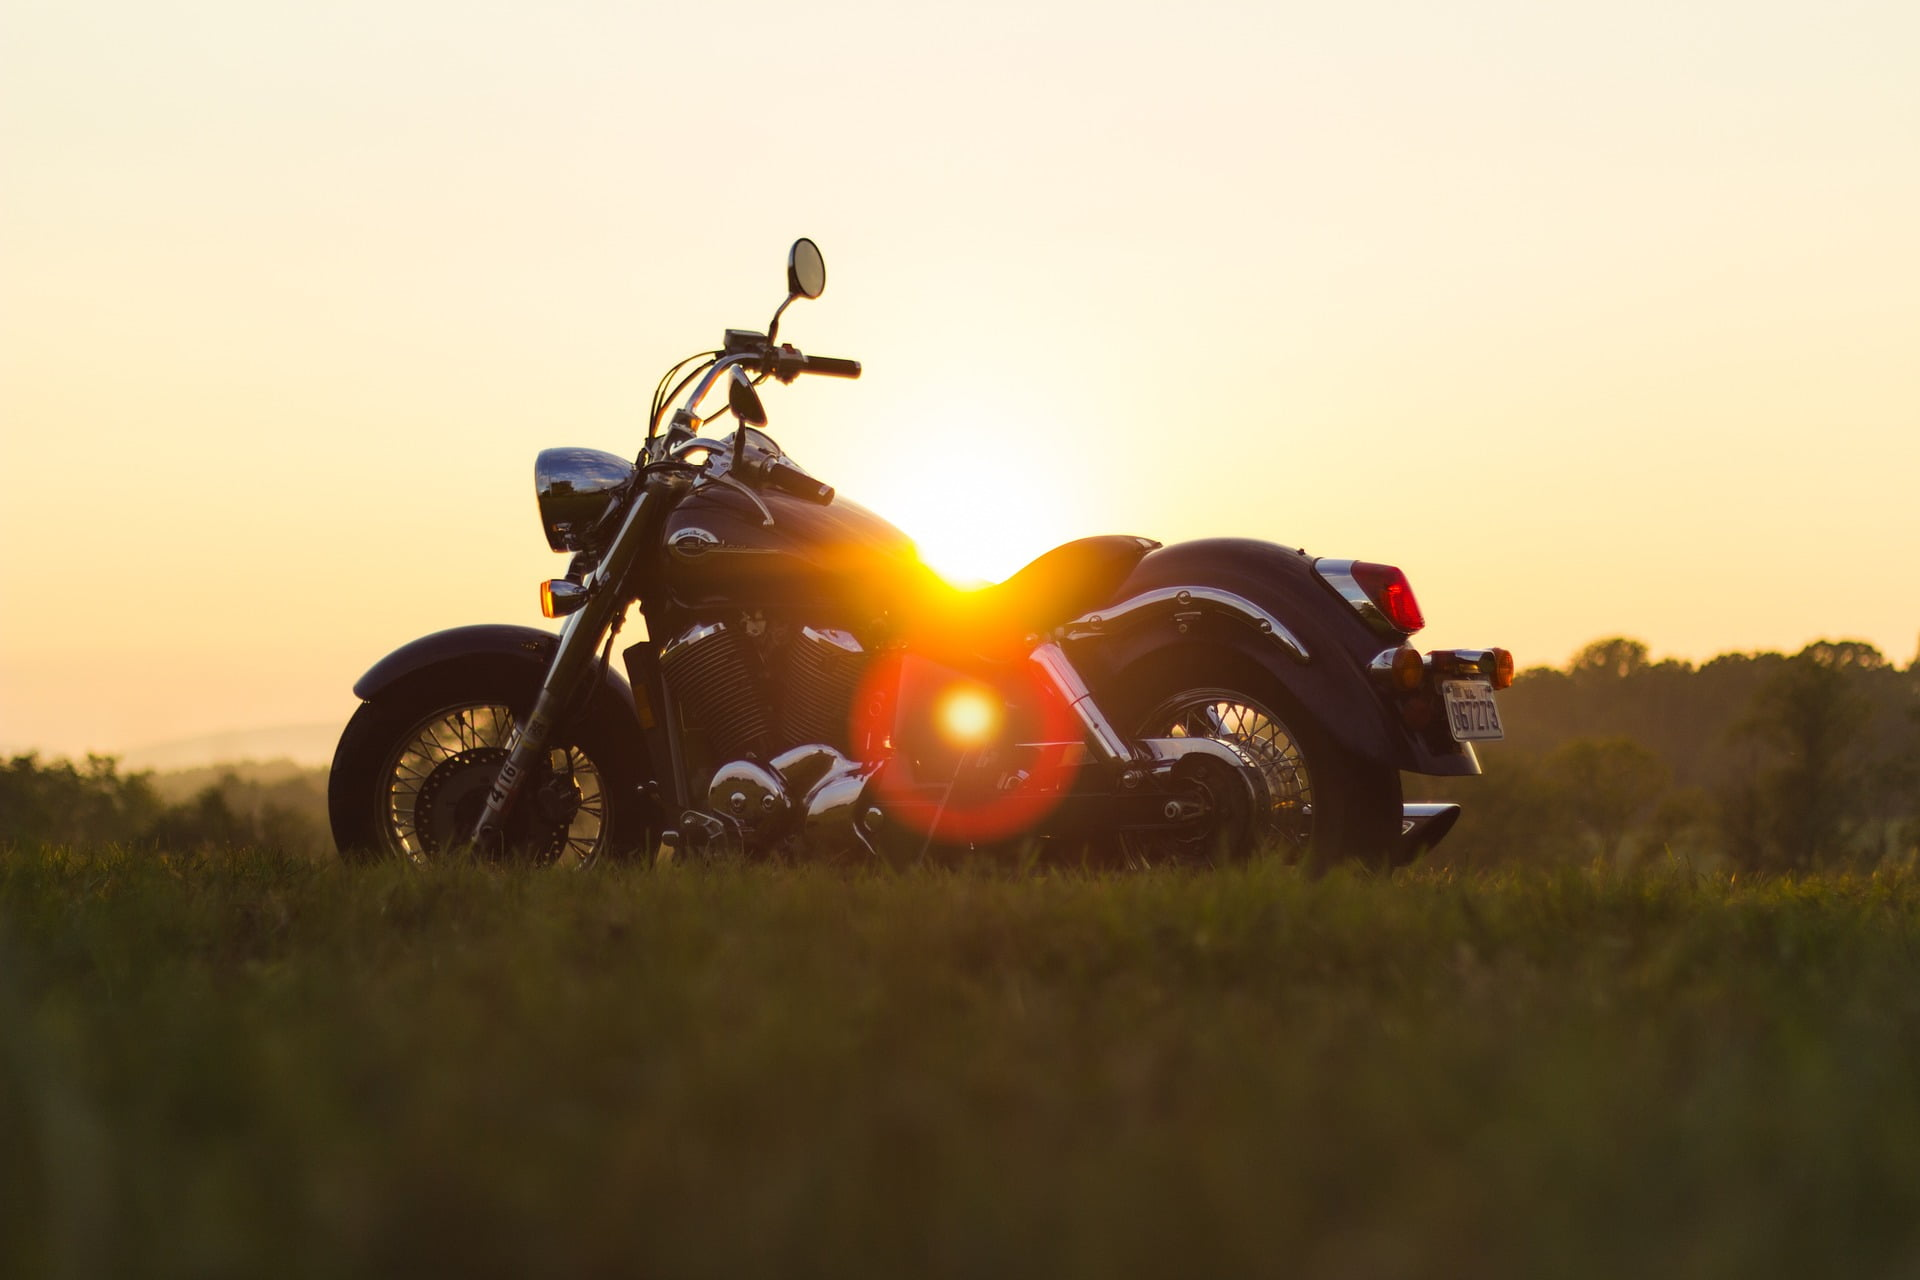 motorcycle-933022_1920